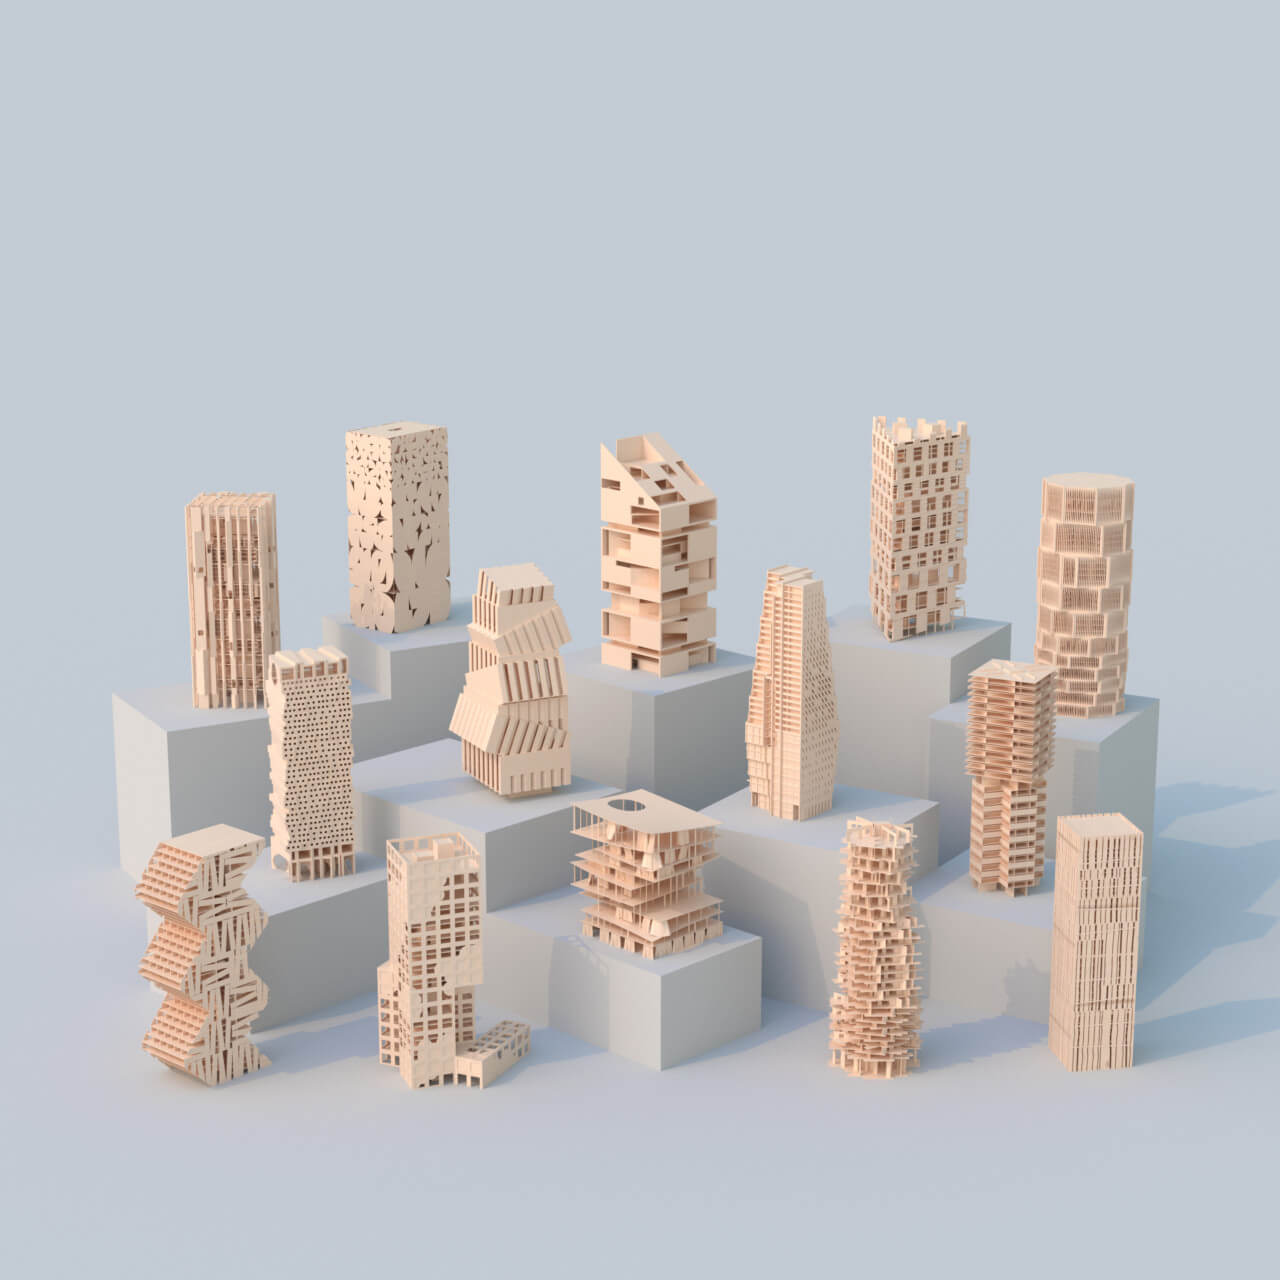 Scale towers all made from mass timber